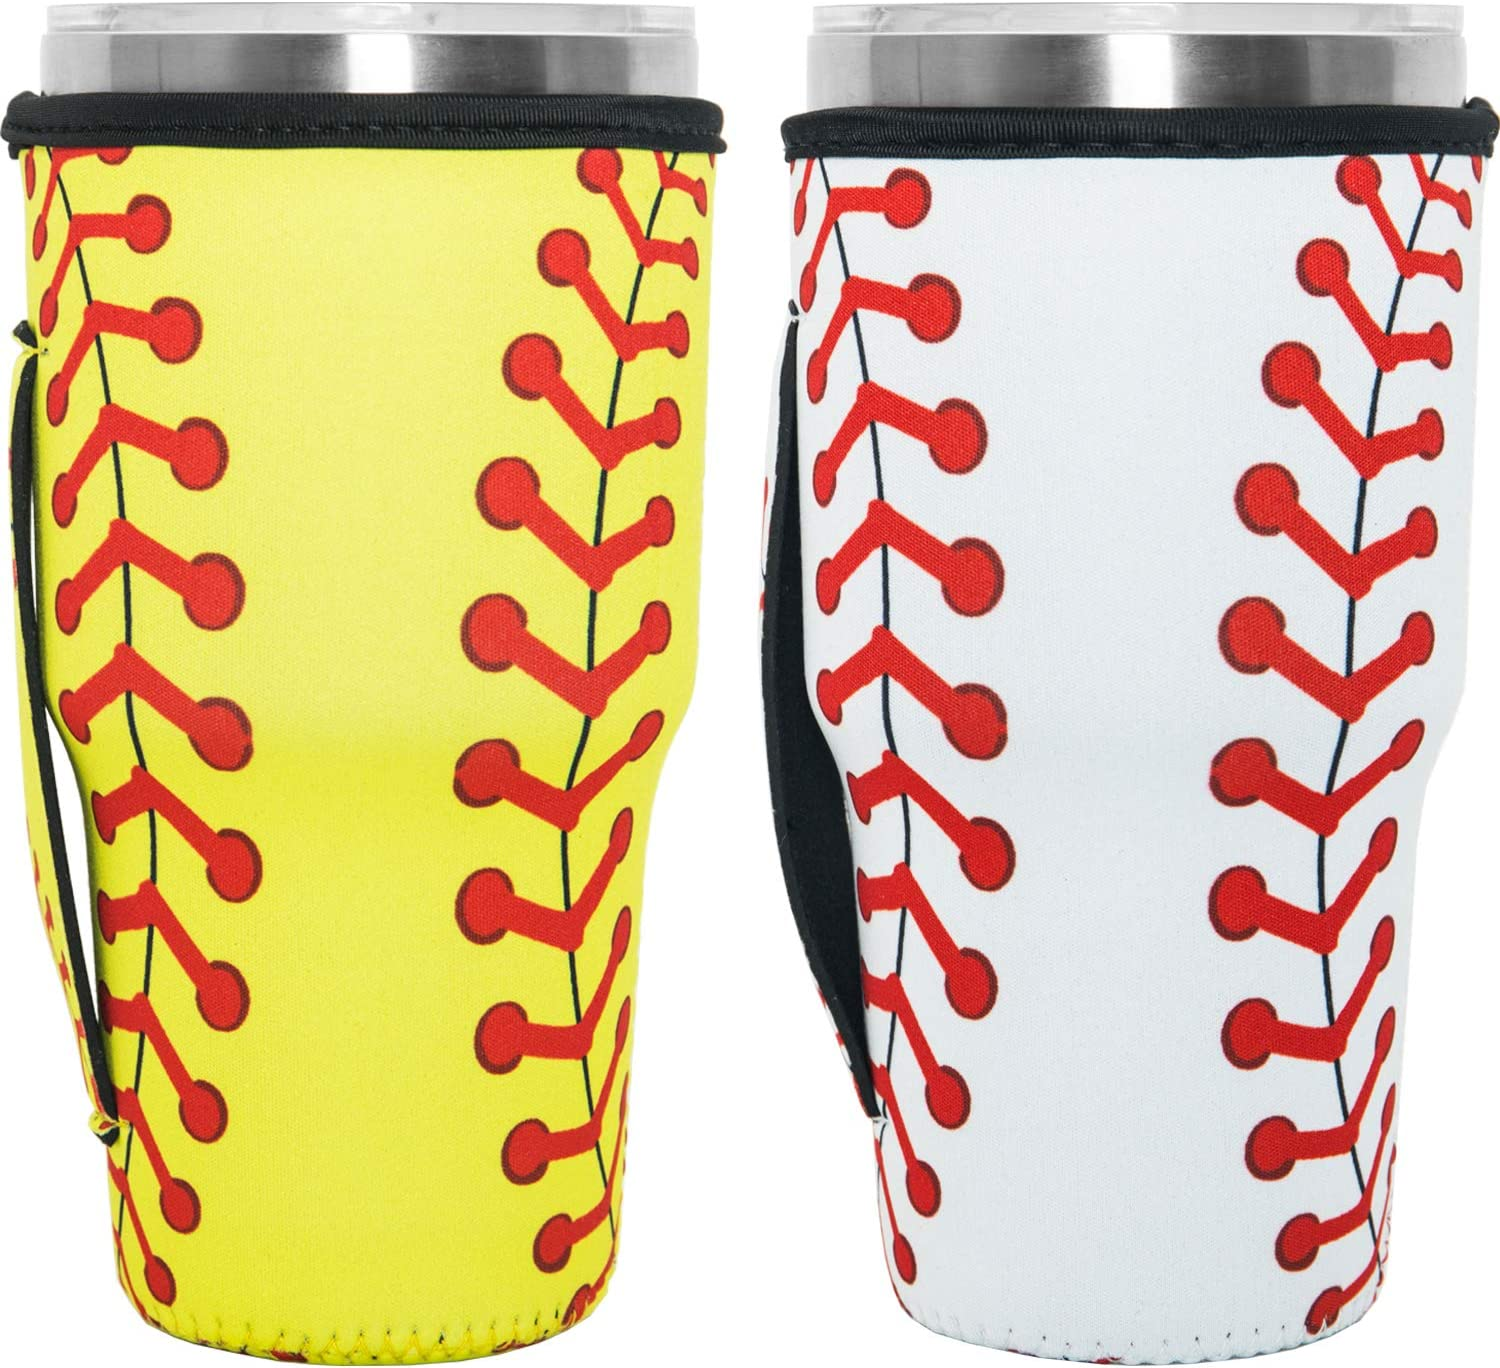 HaiMay 2 Pieces Reusable Iced Coffee Cup Sleeve Neoprene Insulated Sleeves Cup Cover Holder Tumbler Cup Drinks Sleeve Holder Idea for 30oz-32oz Cold Hot Beverages, Baseball Style